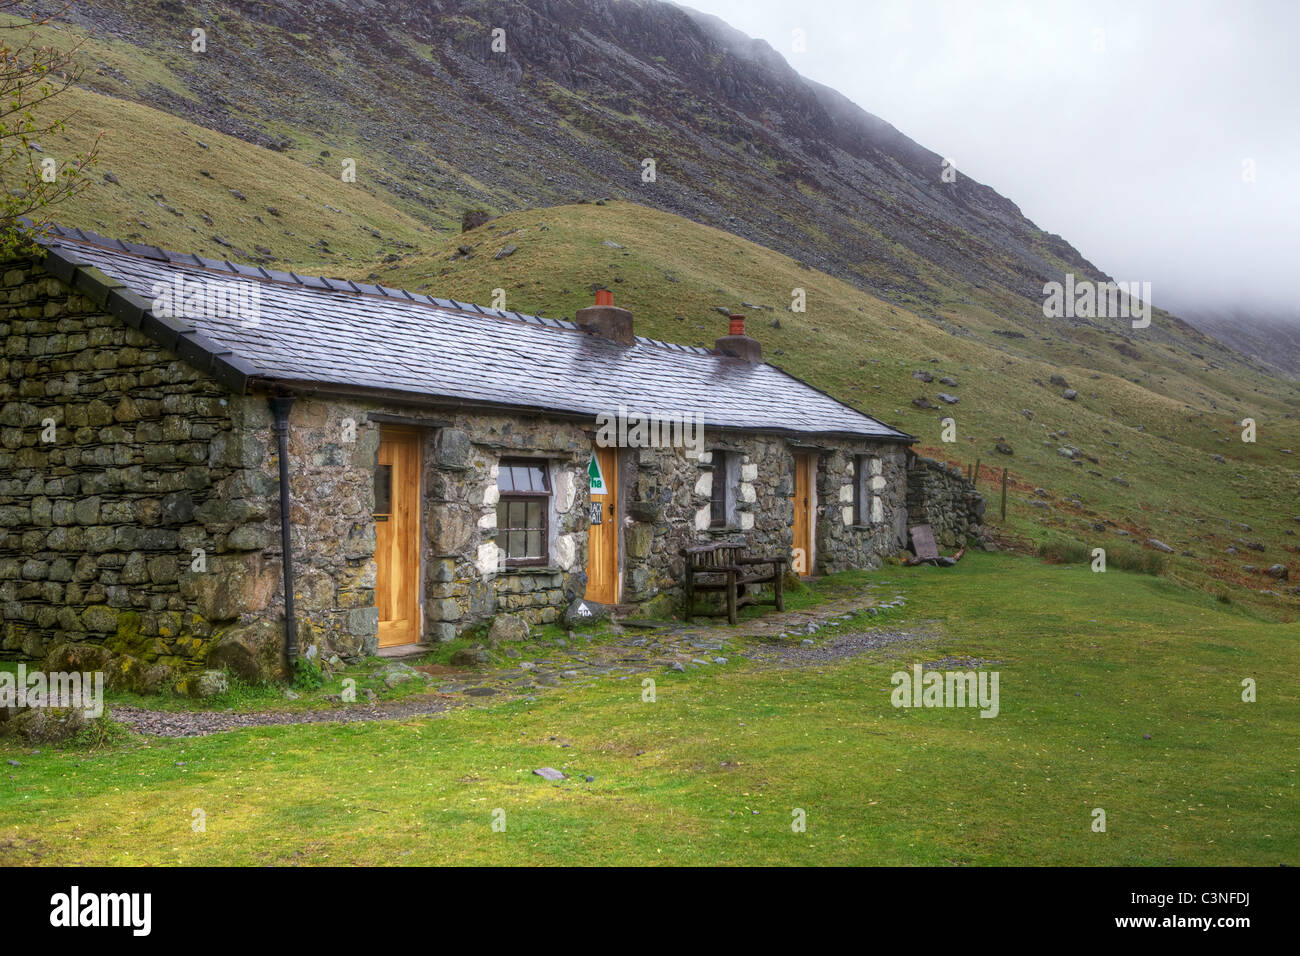 YHA Black Sail at the Top of Ennerdale Valley - Stock Image